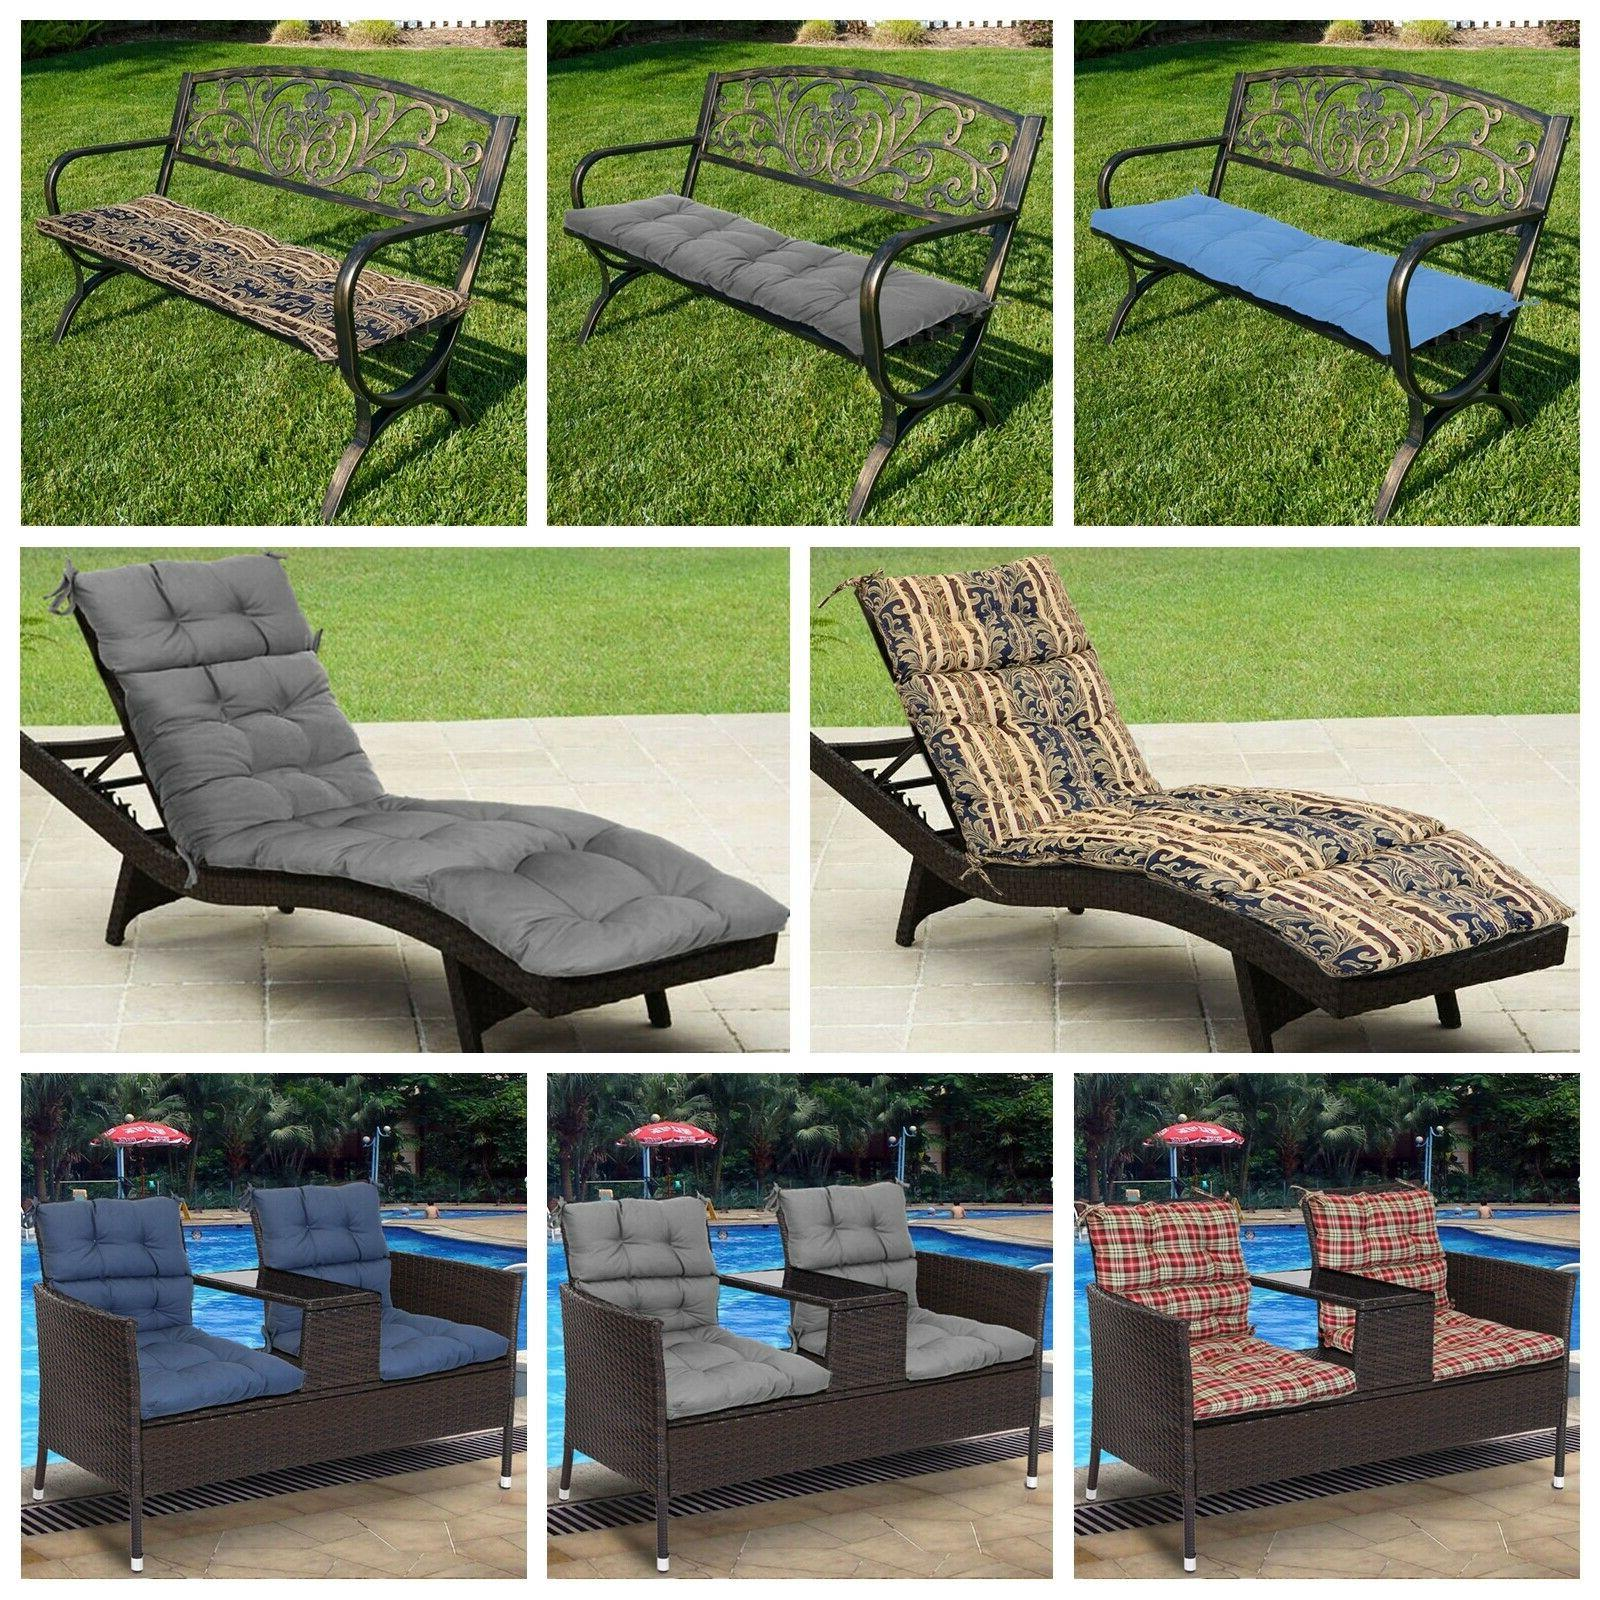 dining patio pillow chaise lounge comfort cushion